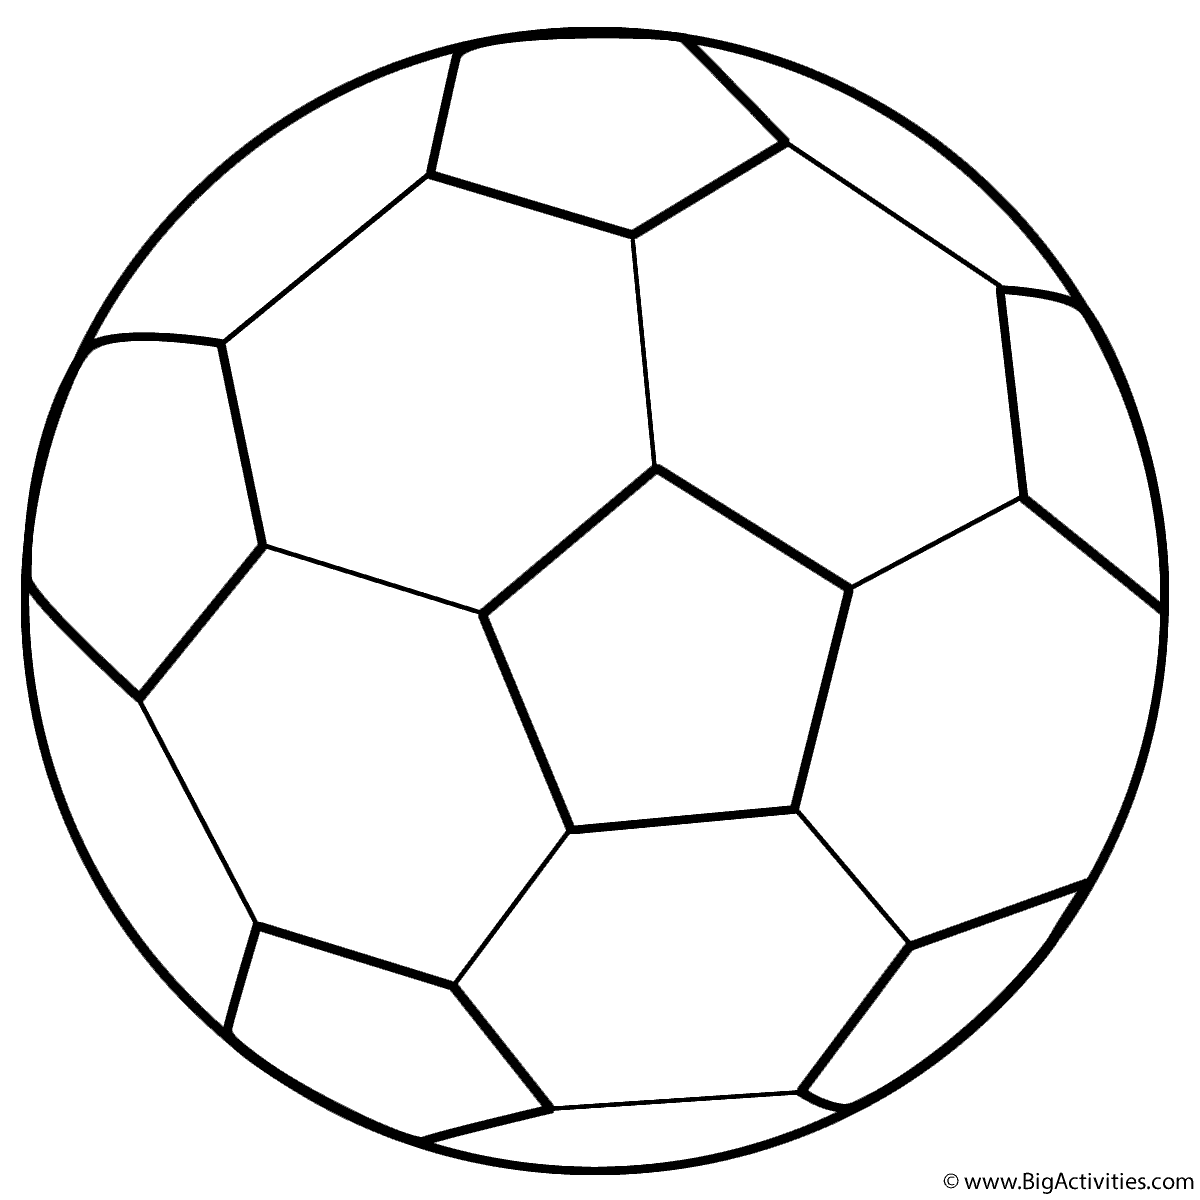 Soccer Ball Printable Father S Day Coloring Pages For Kids Soccer Ball Football Coloring Pages Soccer Crafts [ 1200 x 1200 Pixel ]